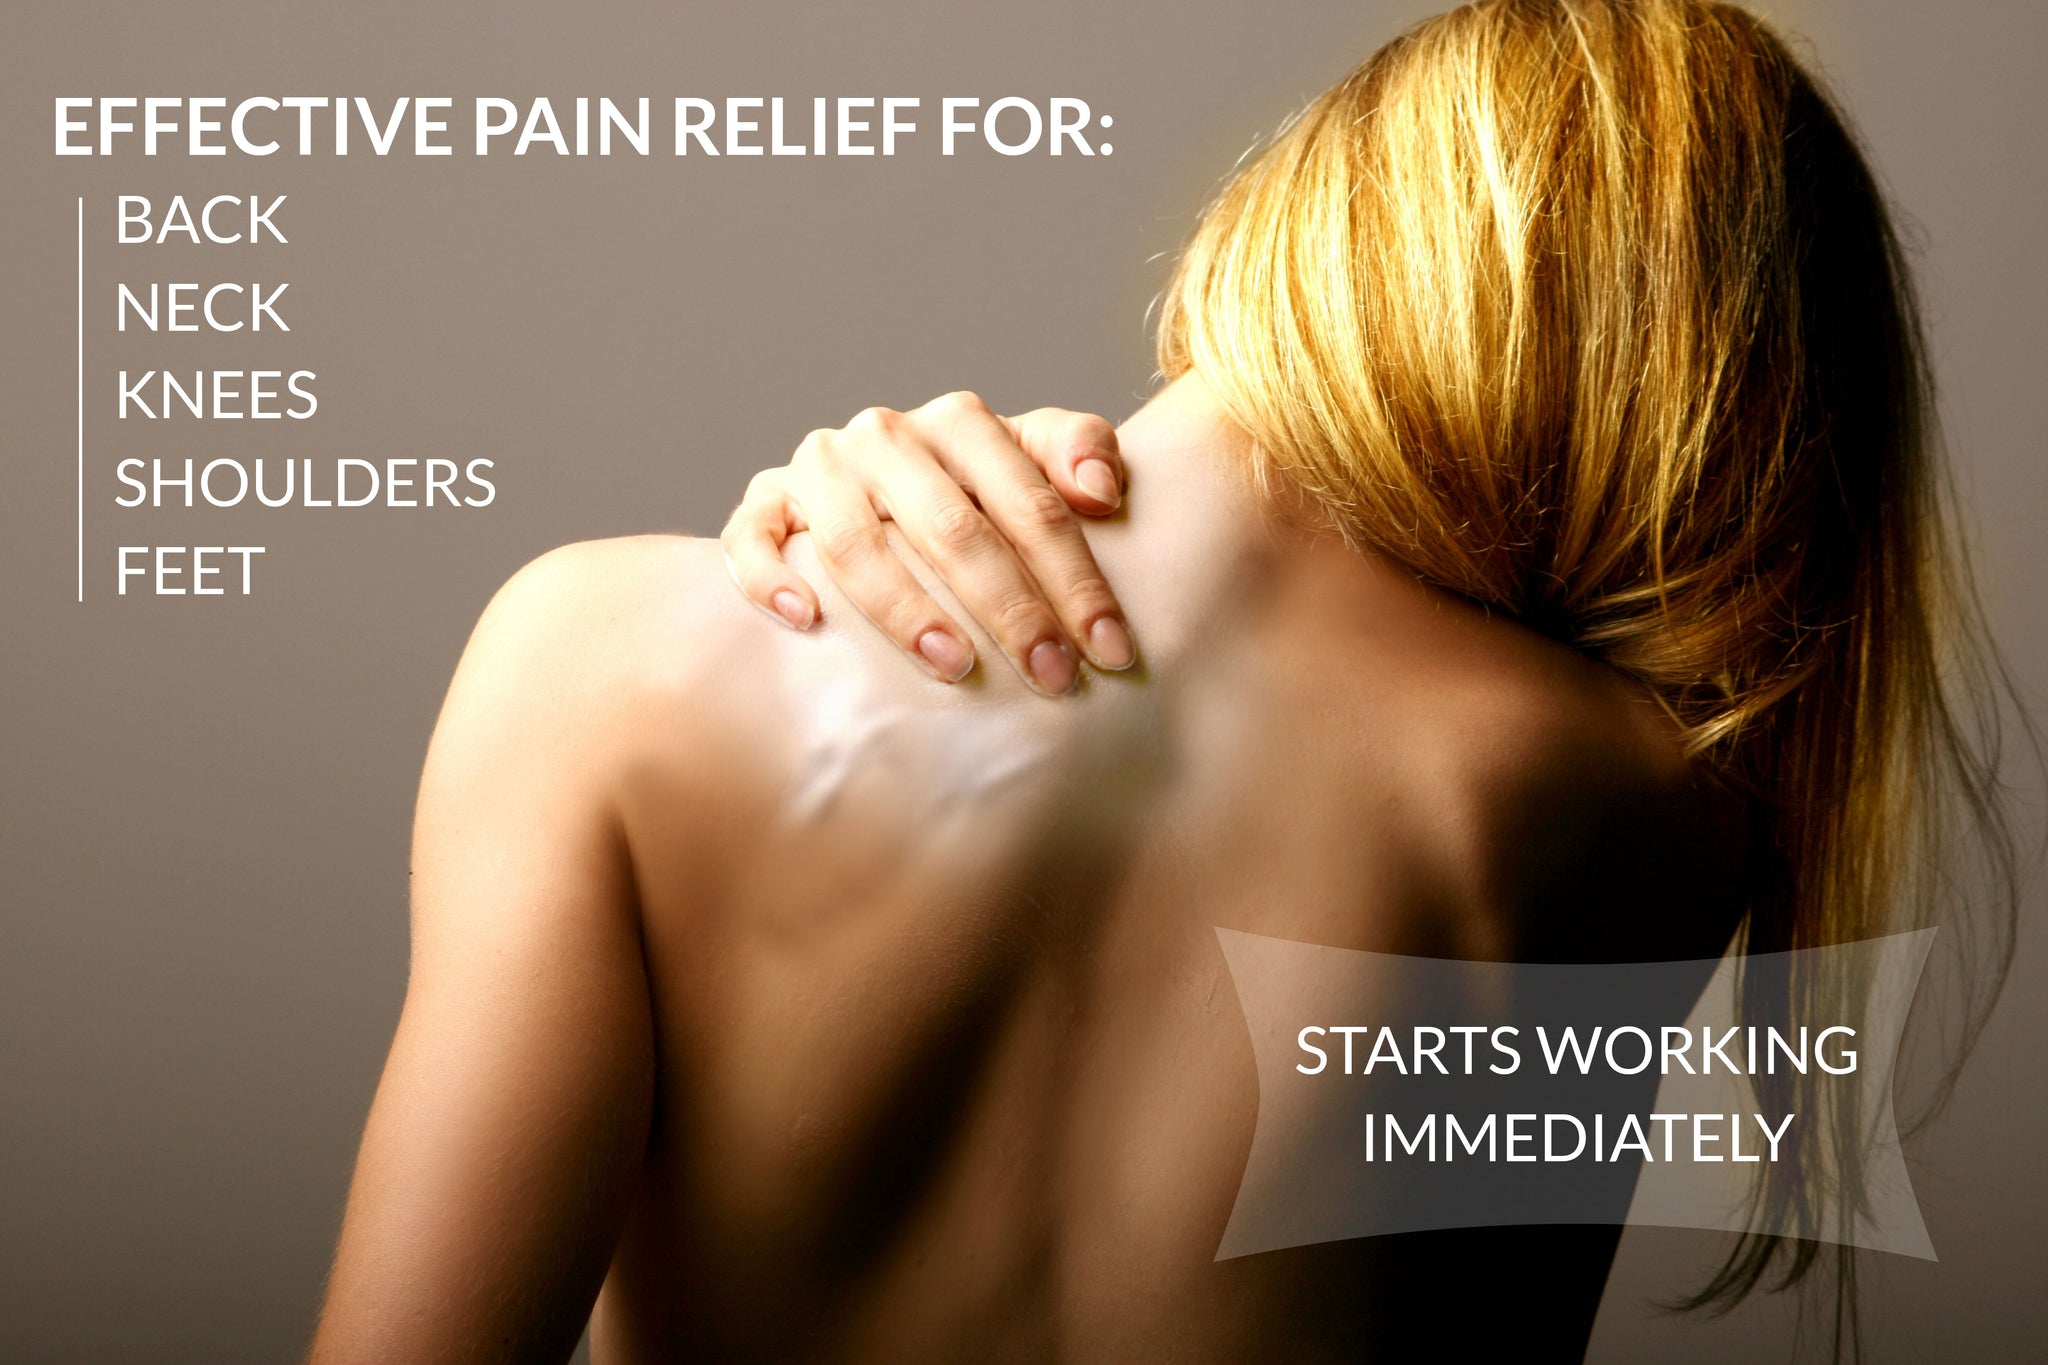 CBD has pain-relieving properties